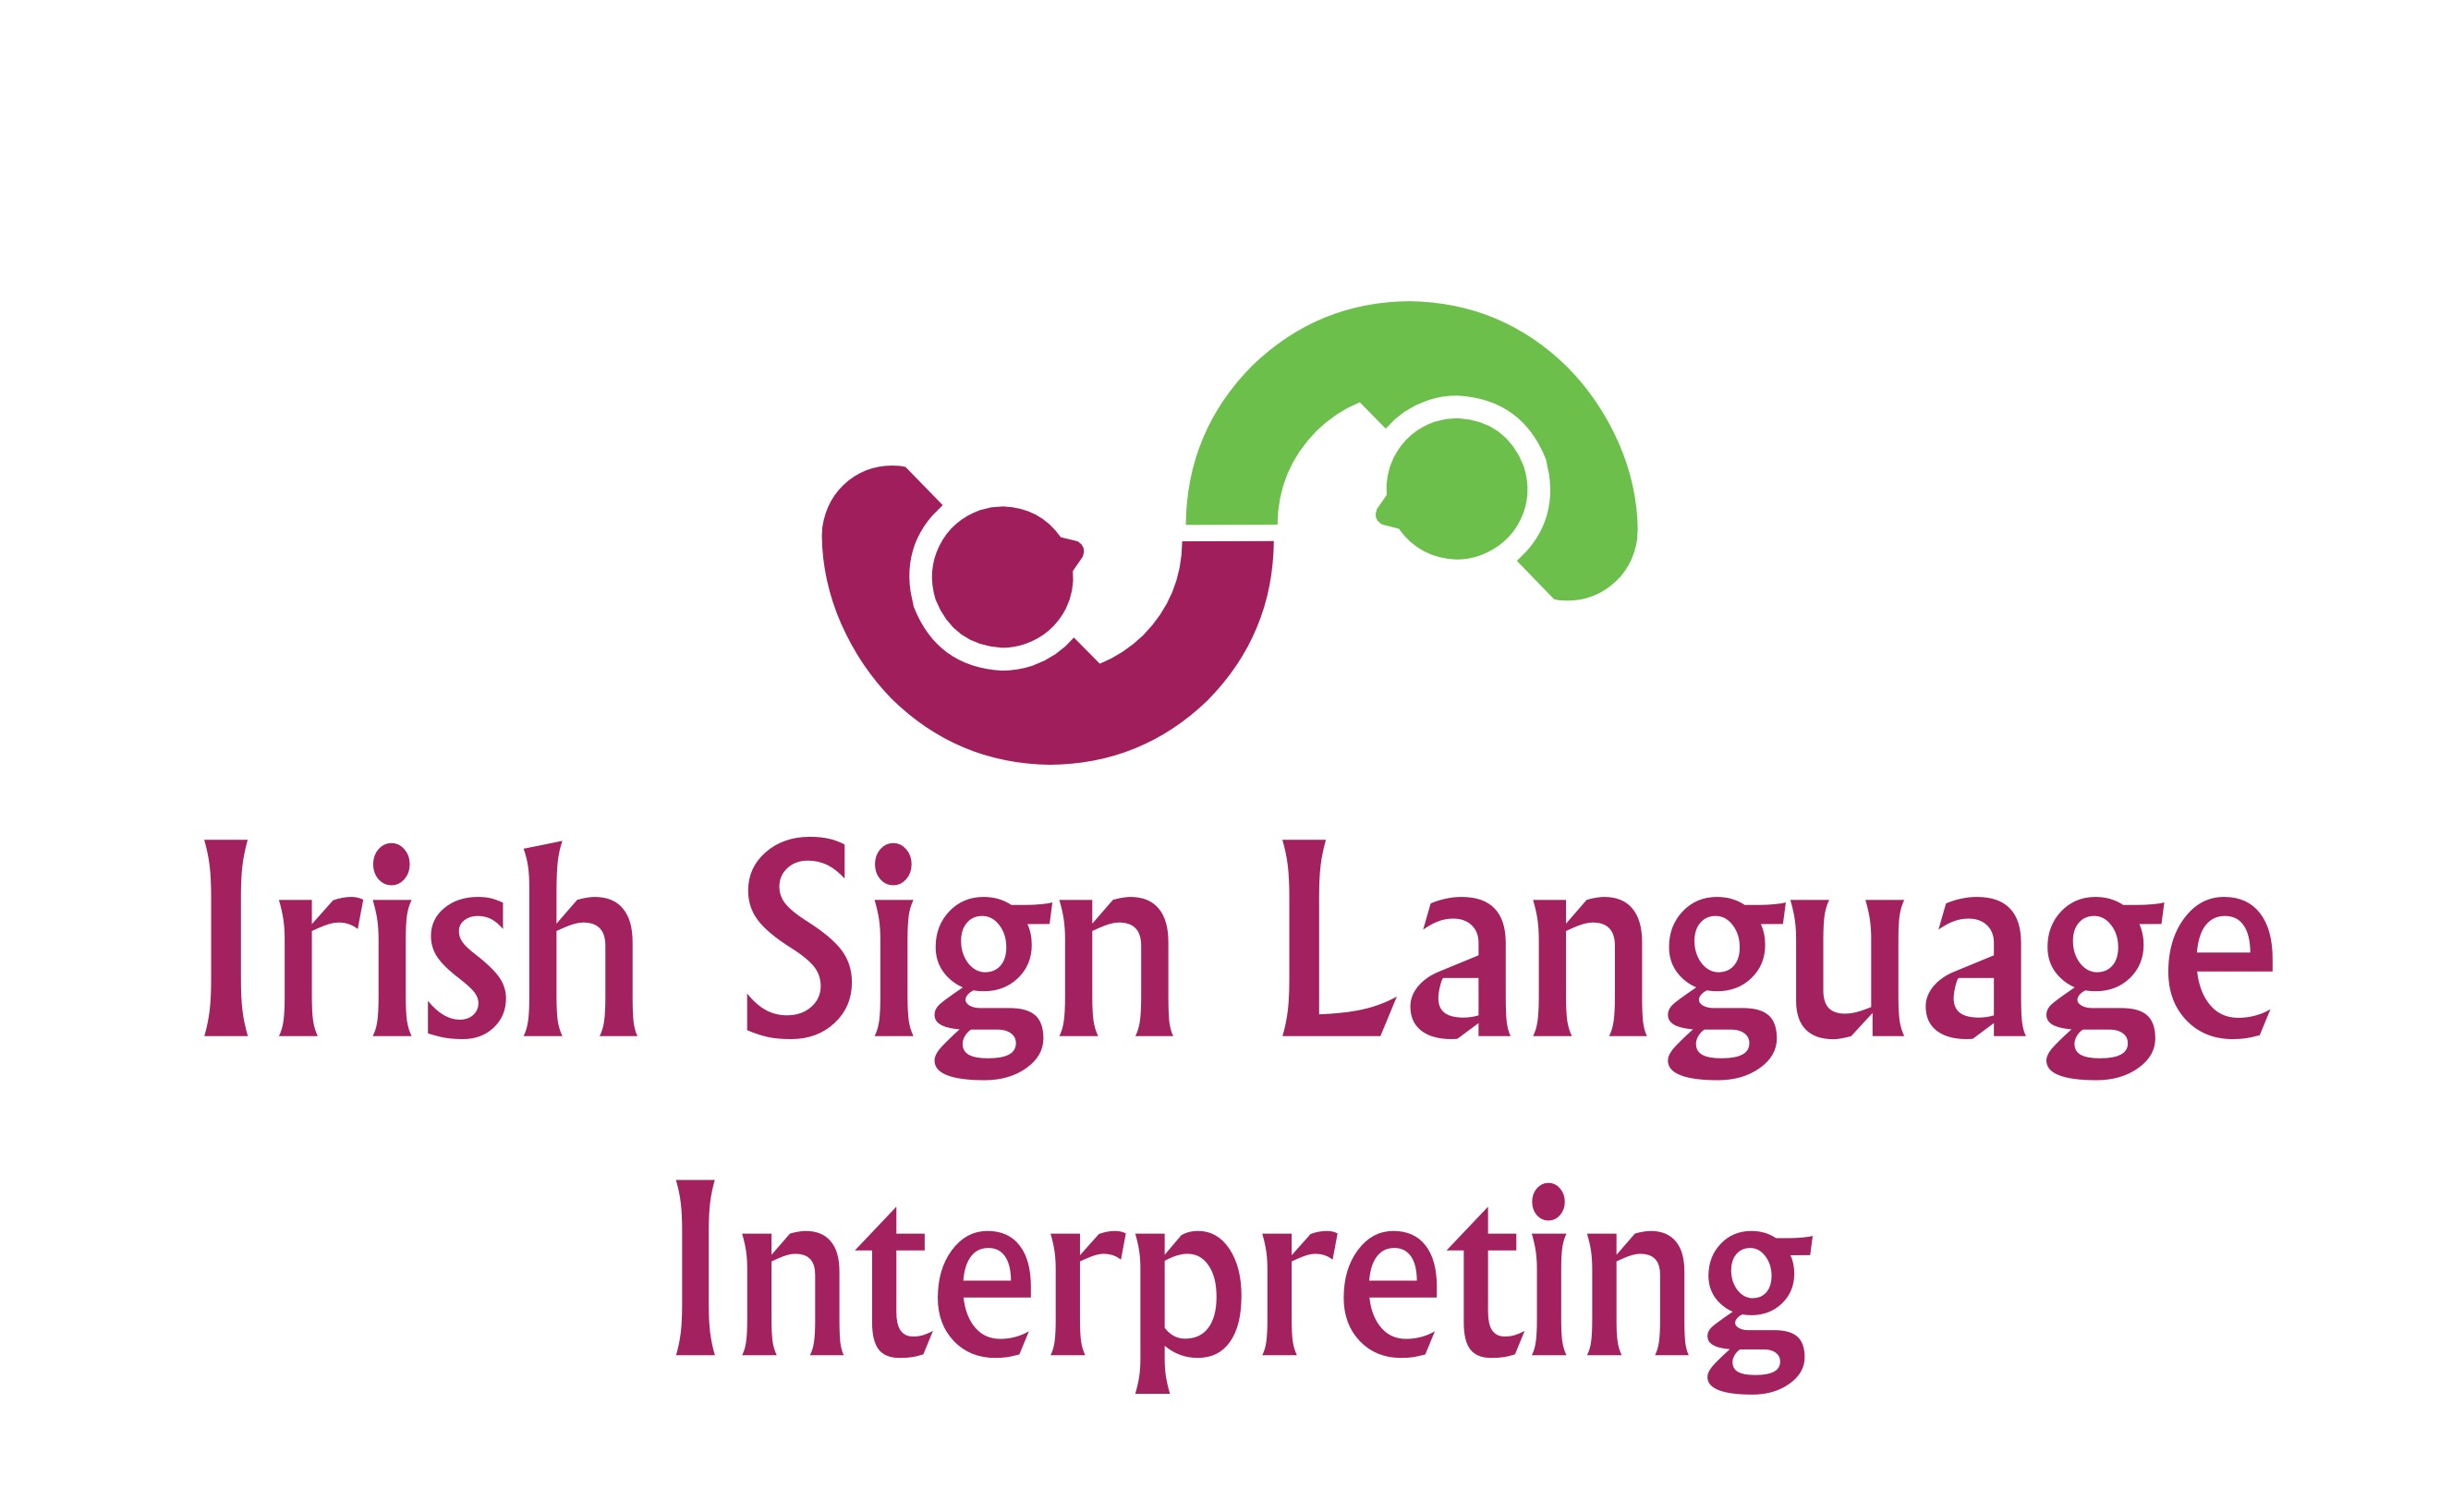 Irish Sign Language Interpreting